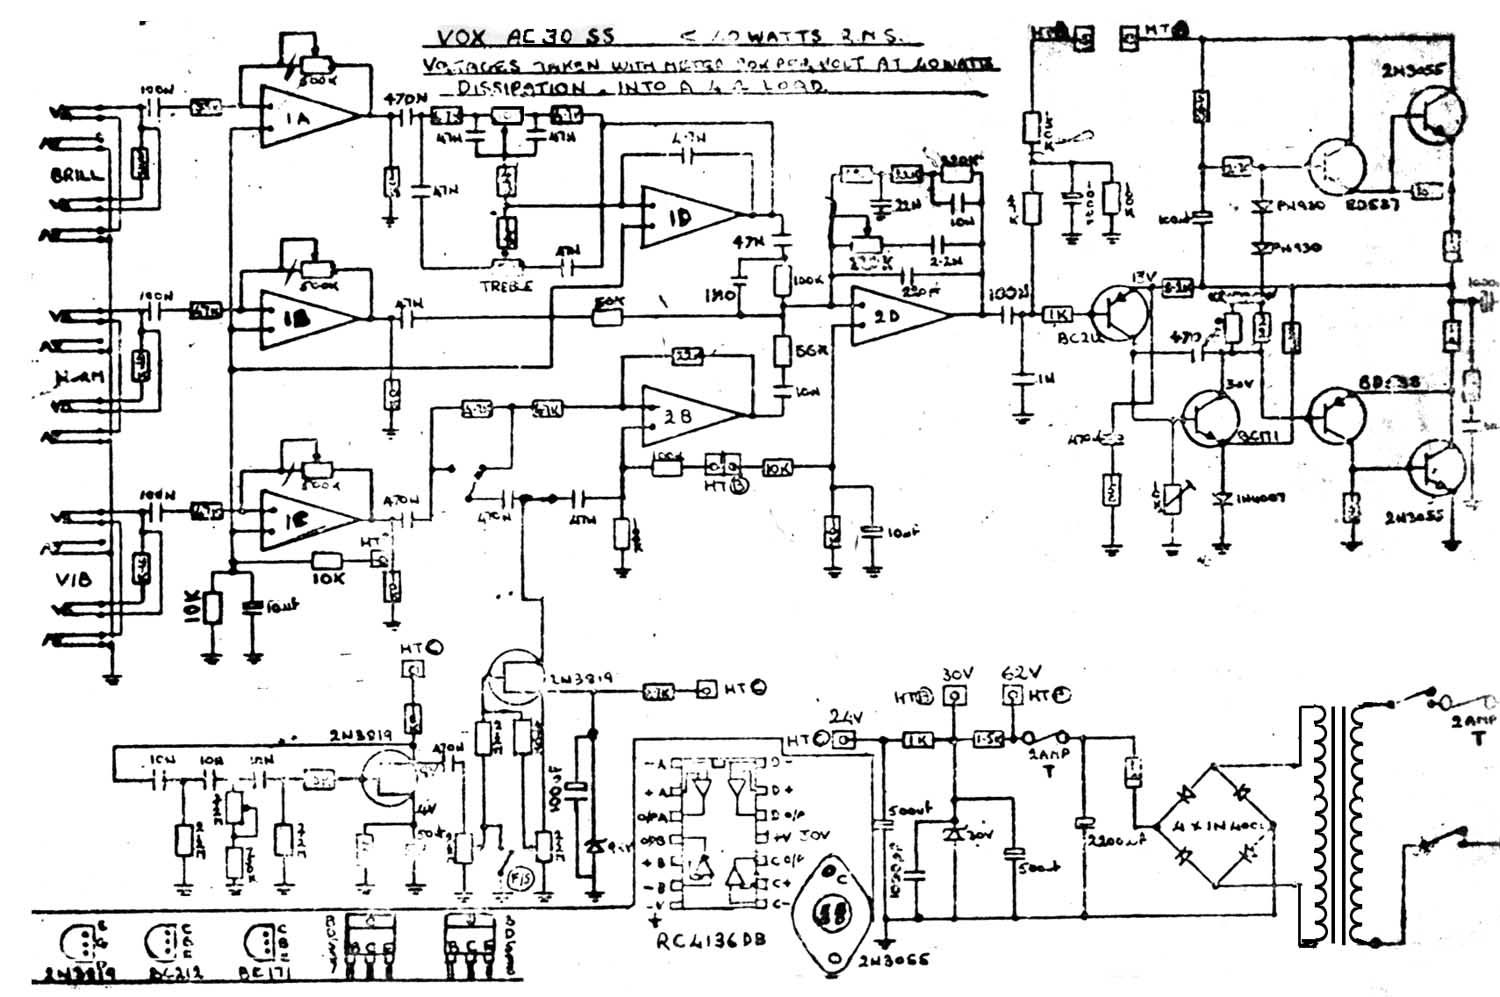 Solid State Amp Wiring Diagram Data Amplifier Car Vox Vintage Circuit Diagrams 5 Channel Ac30 Ss Model 1970s